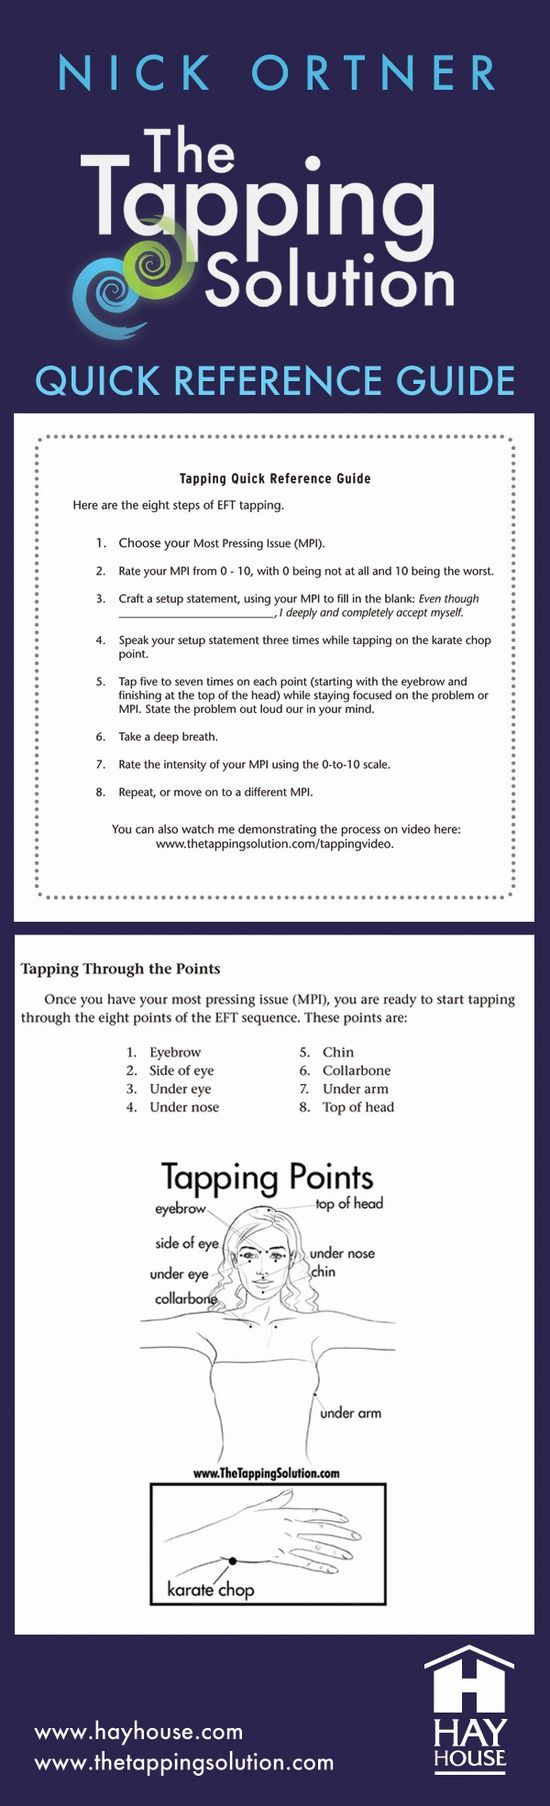 The Tapping Solution quick reference guide